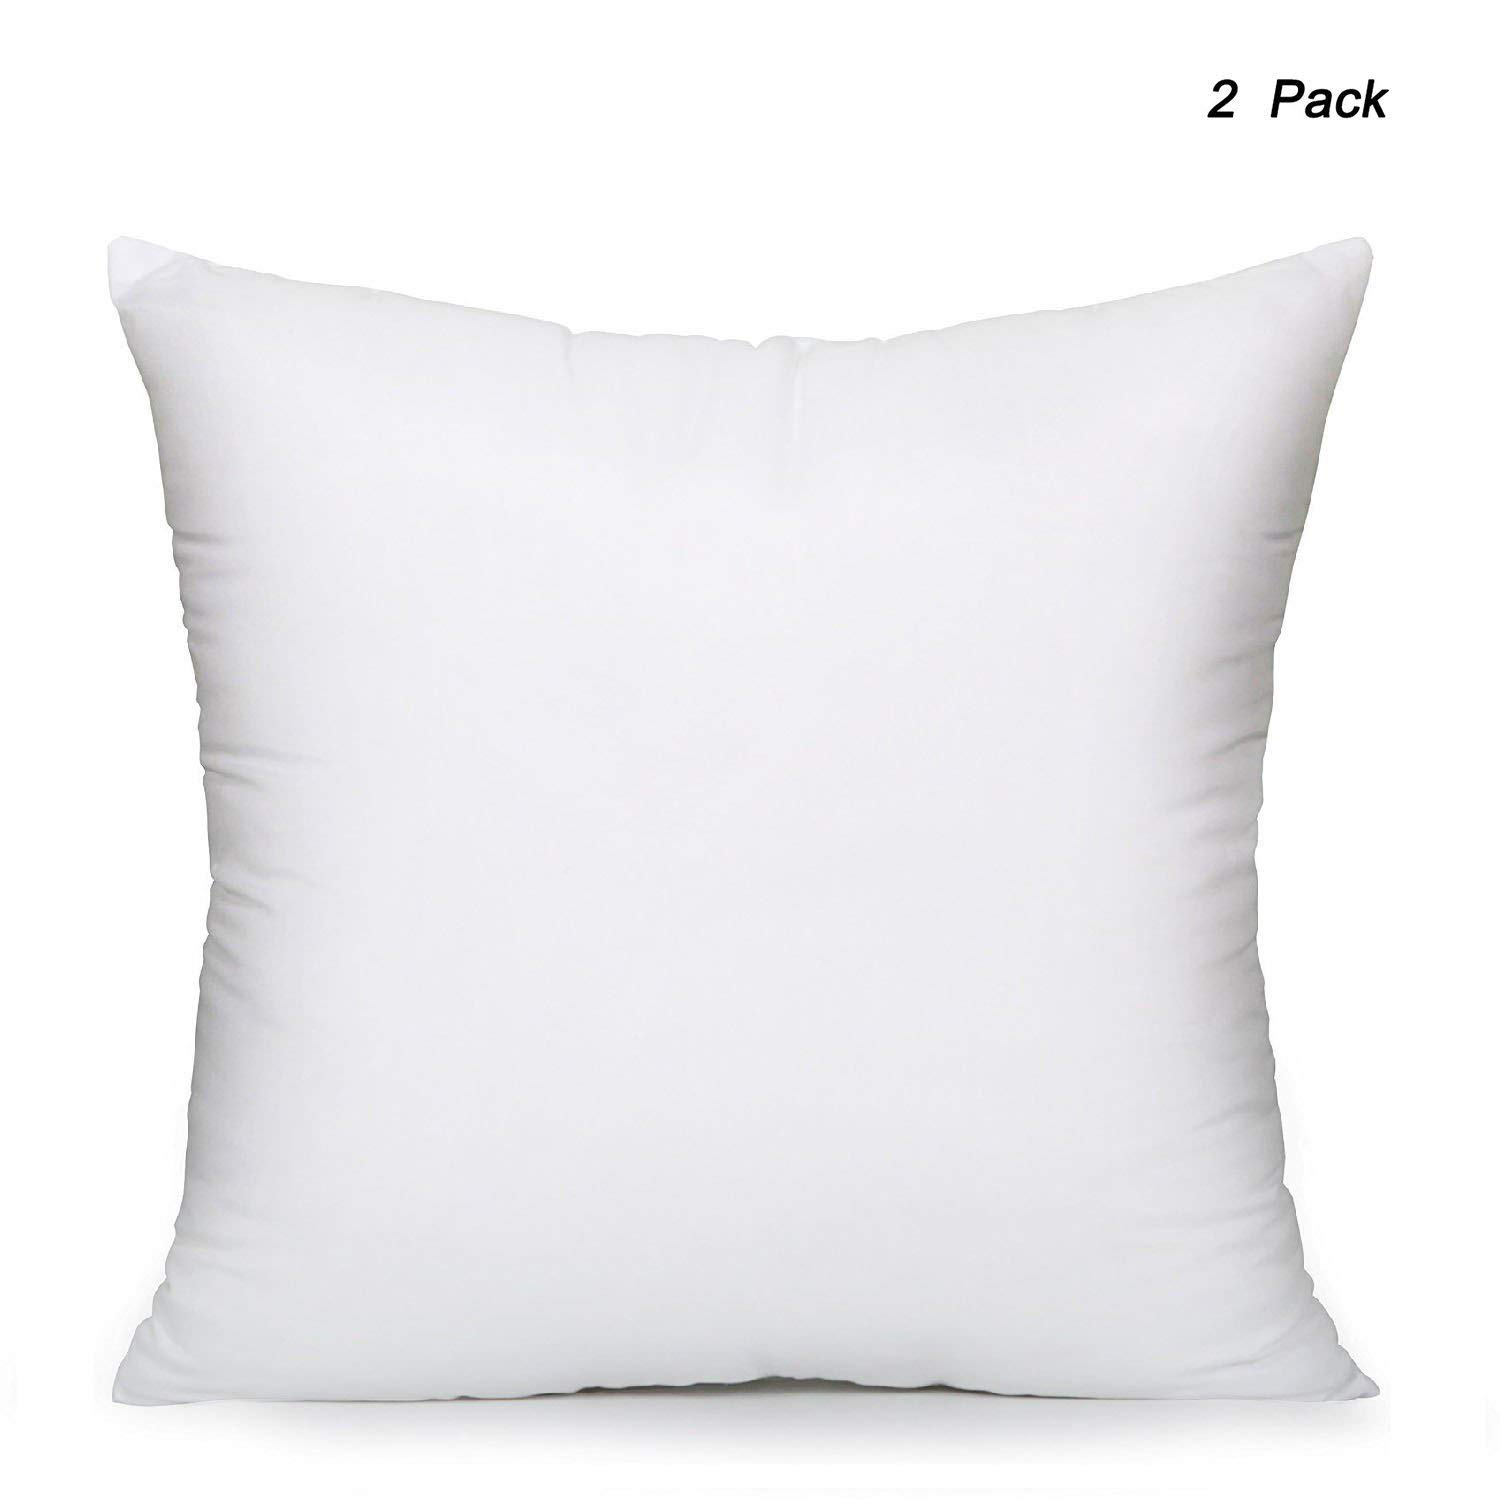 EVERMARKET Square Poly Pillow Insert, 18'' L X 18'' W, White (2)